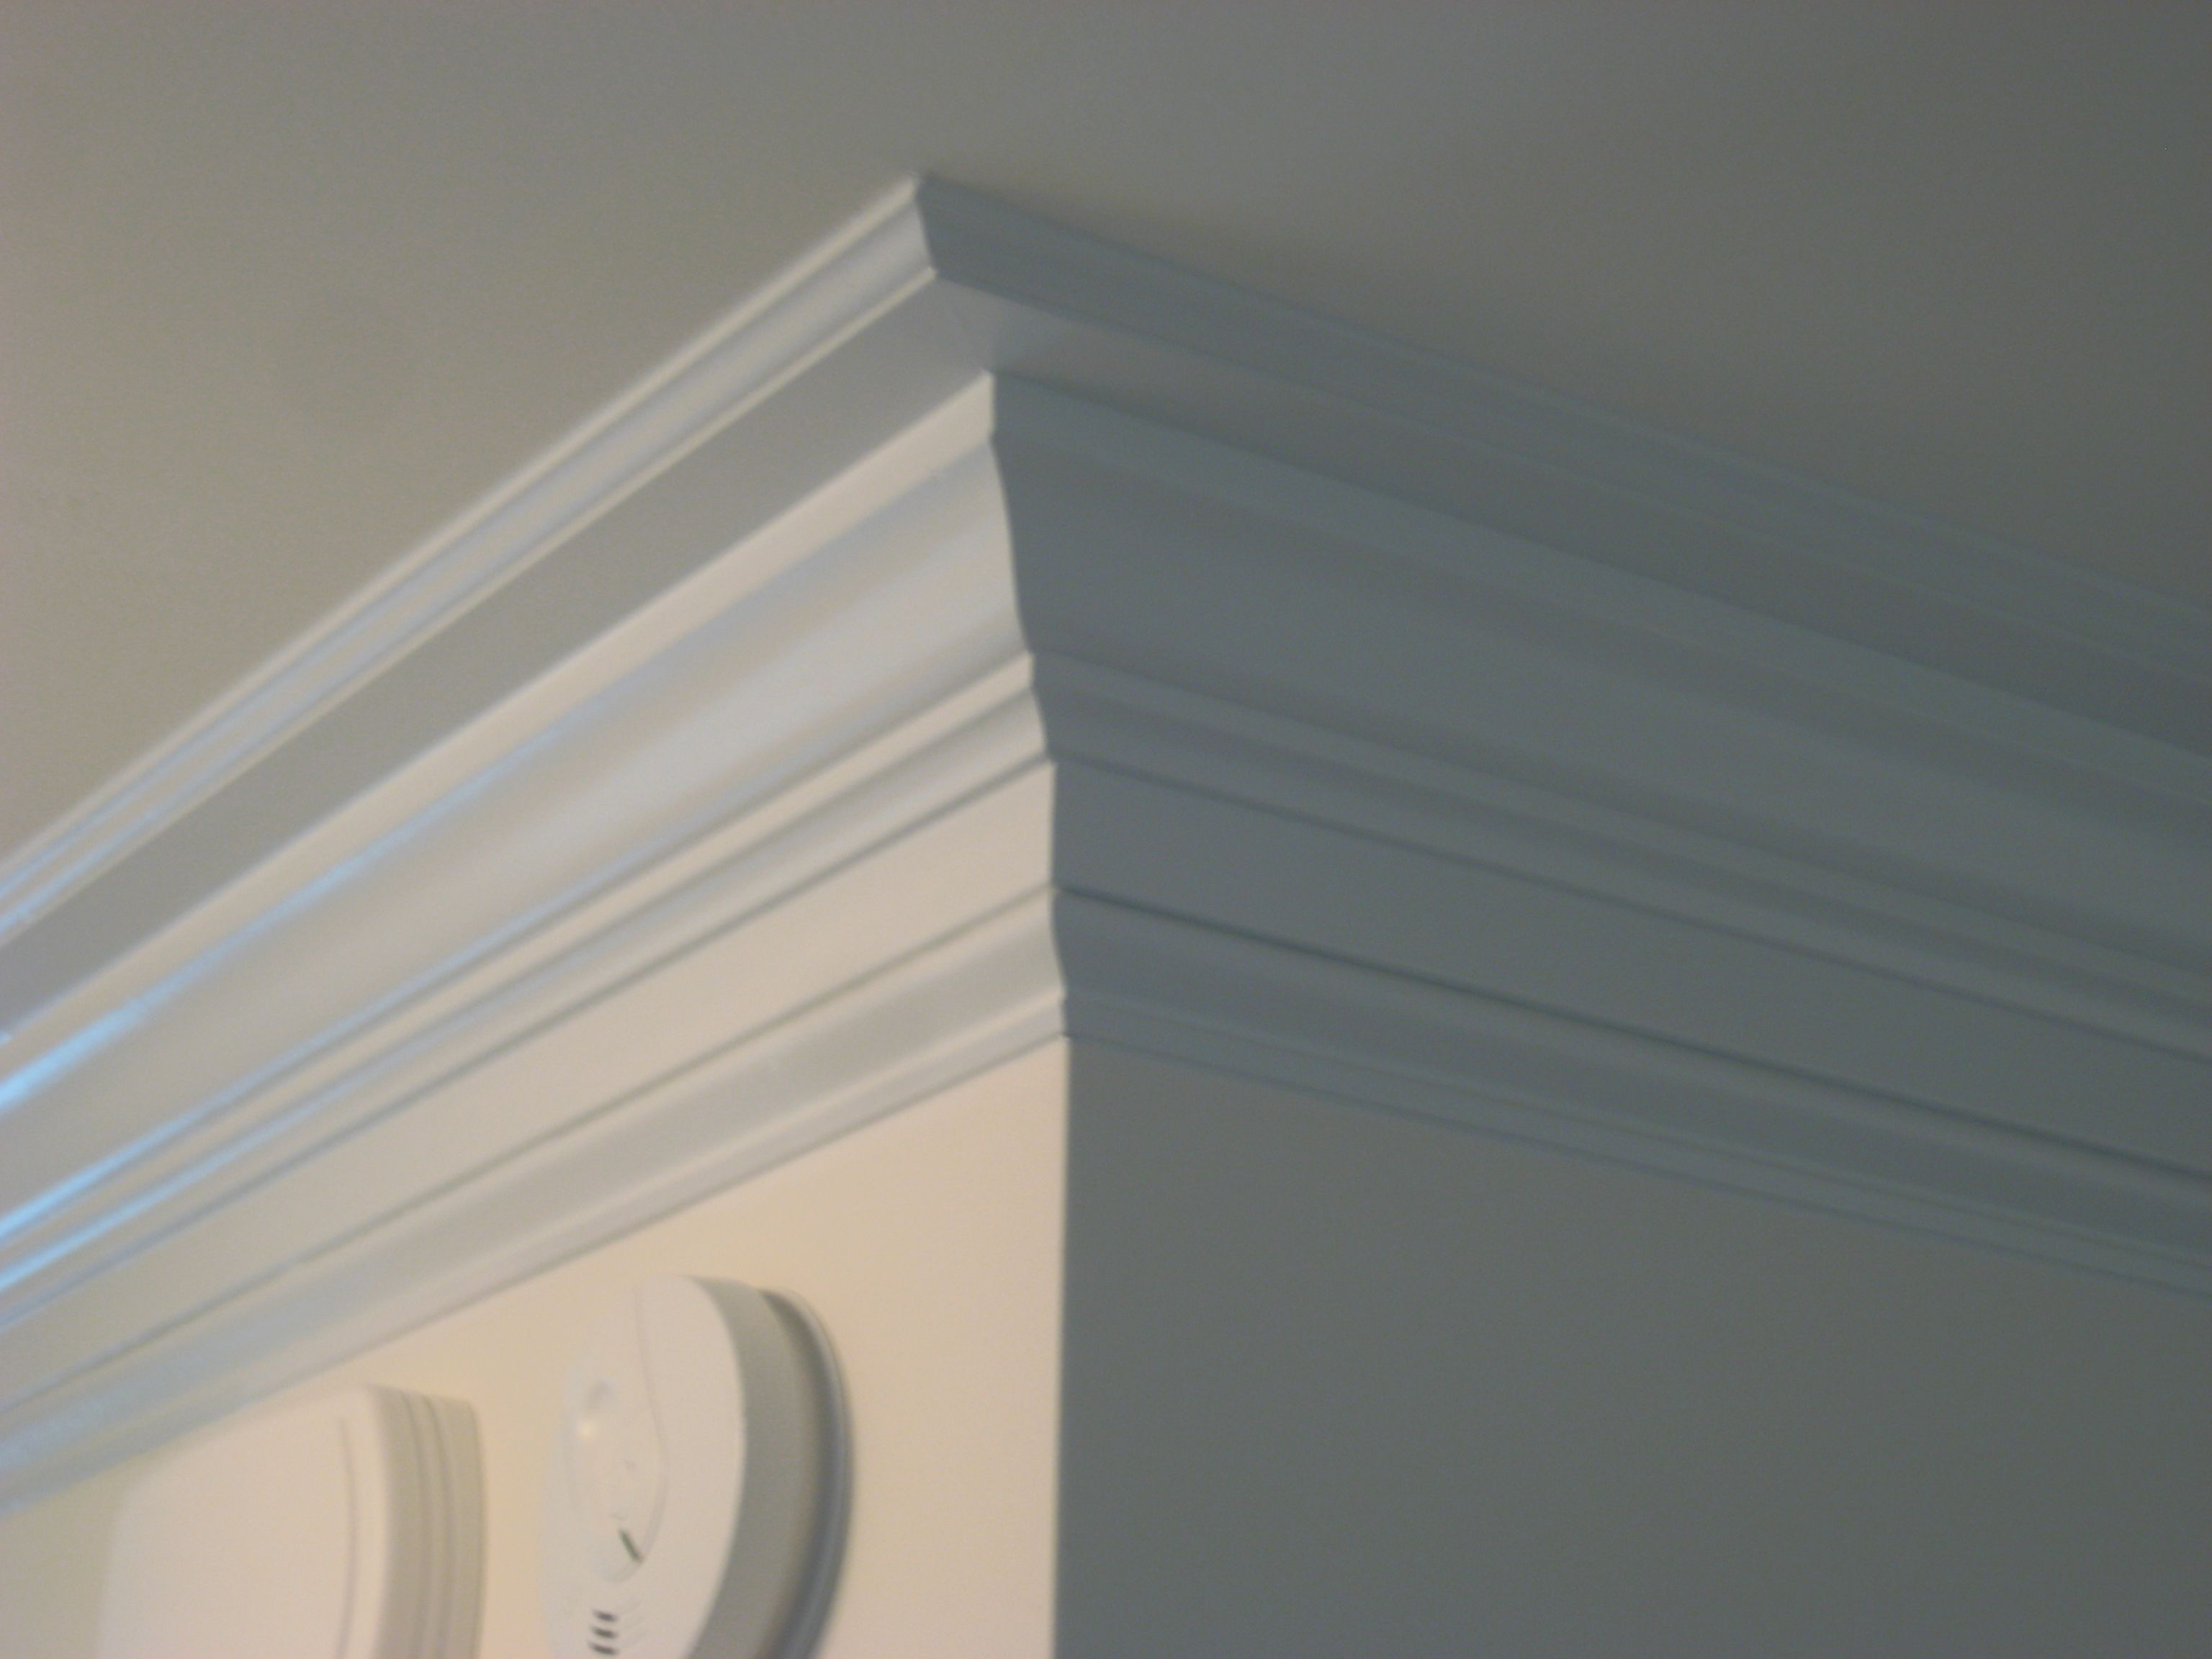 17 Best images about Home on Pinterest   Crown molding installation   Columns and In kitchen. 17 Best images about Home on Pinterest   Crown molding